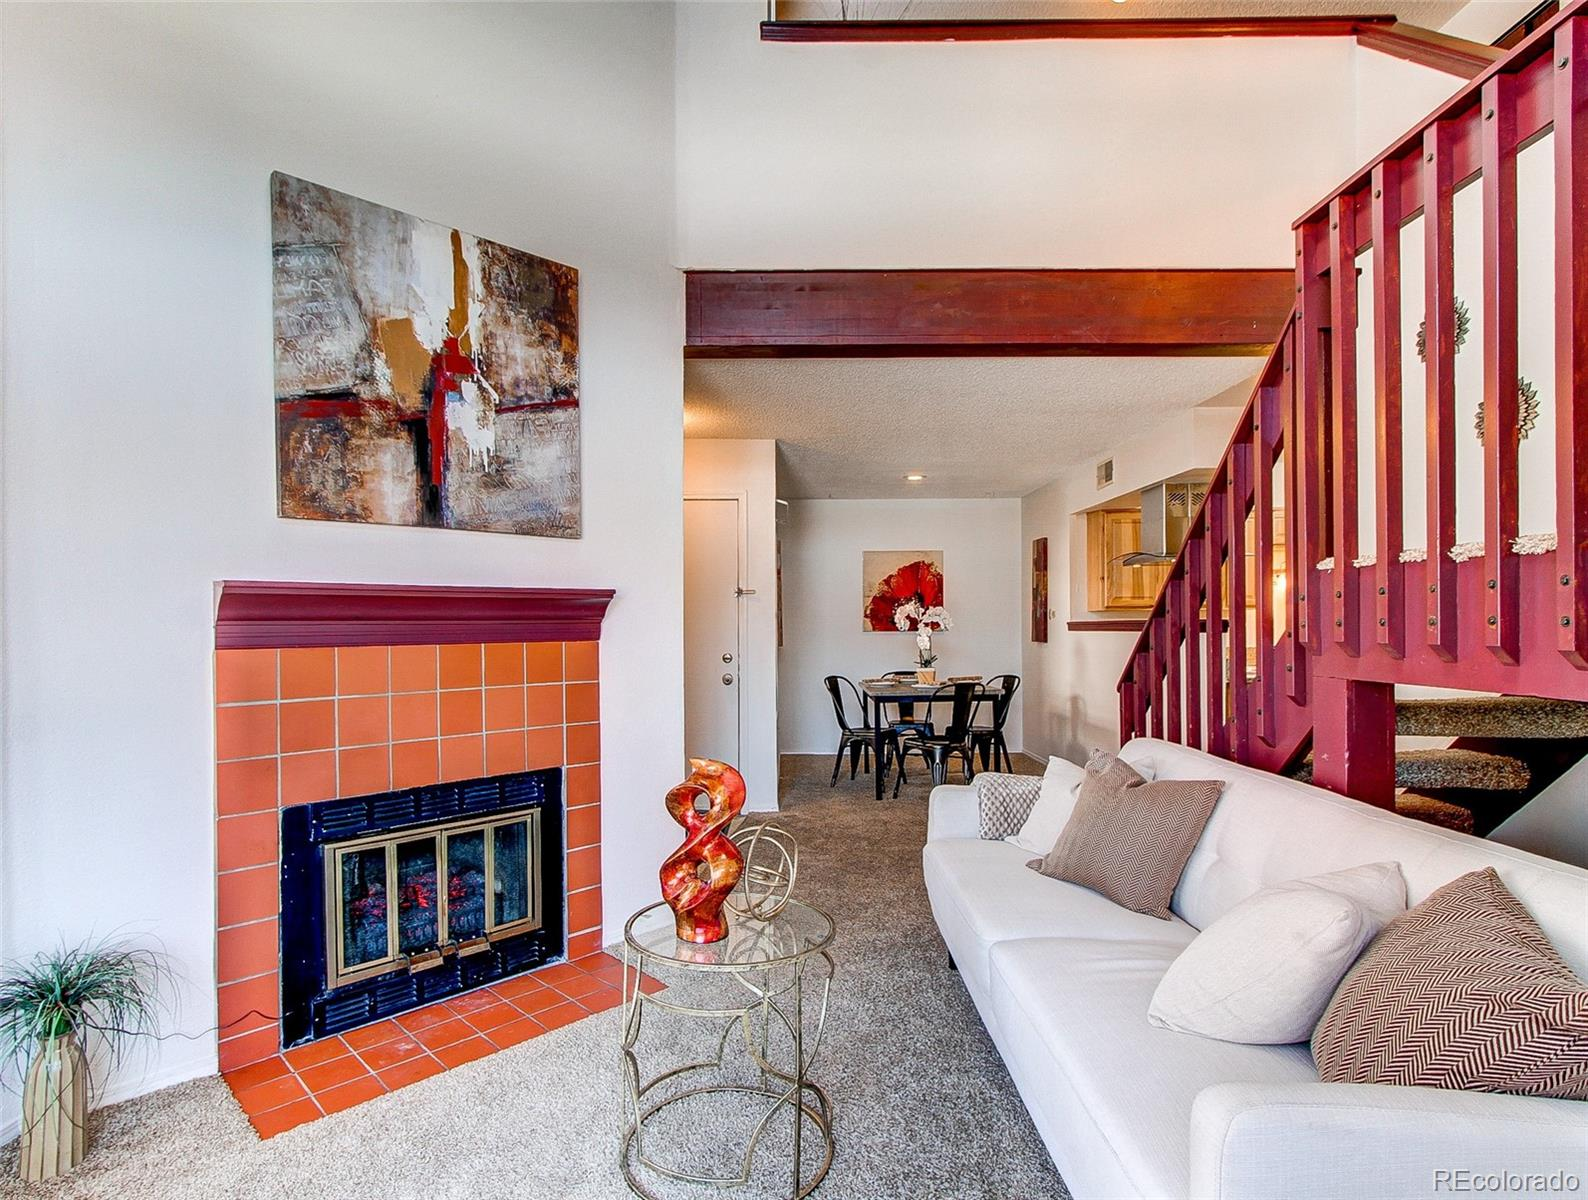 MLS# 7299791 - 7 - 1845 Kendall Street #207C, Lakewood, CO 80214